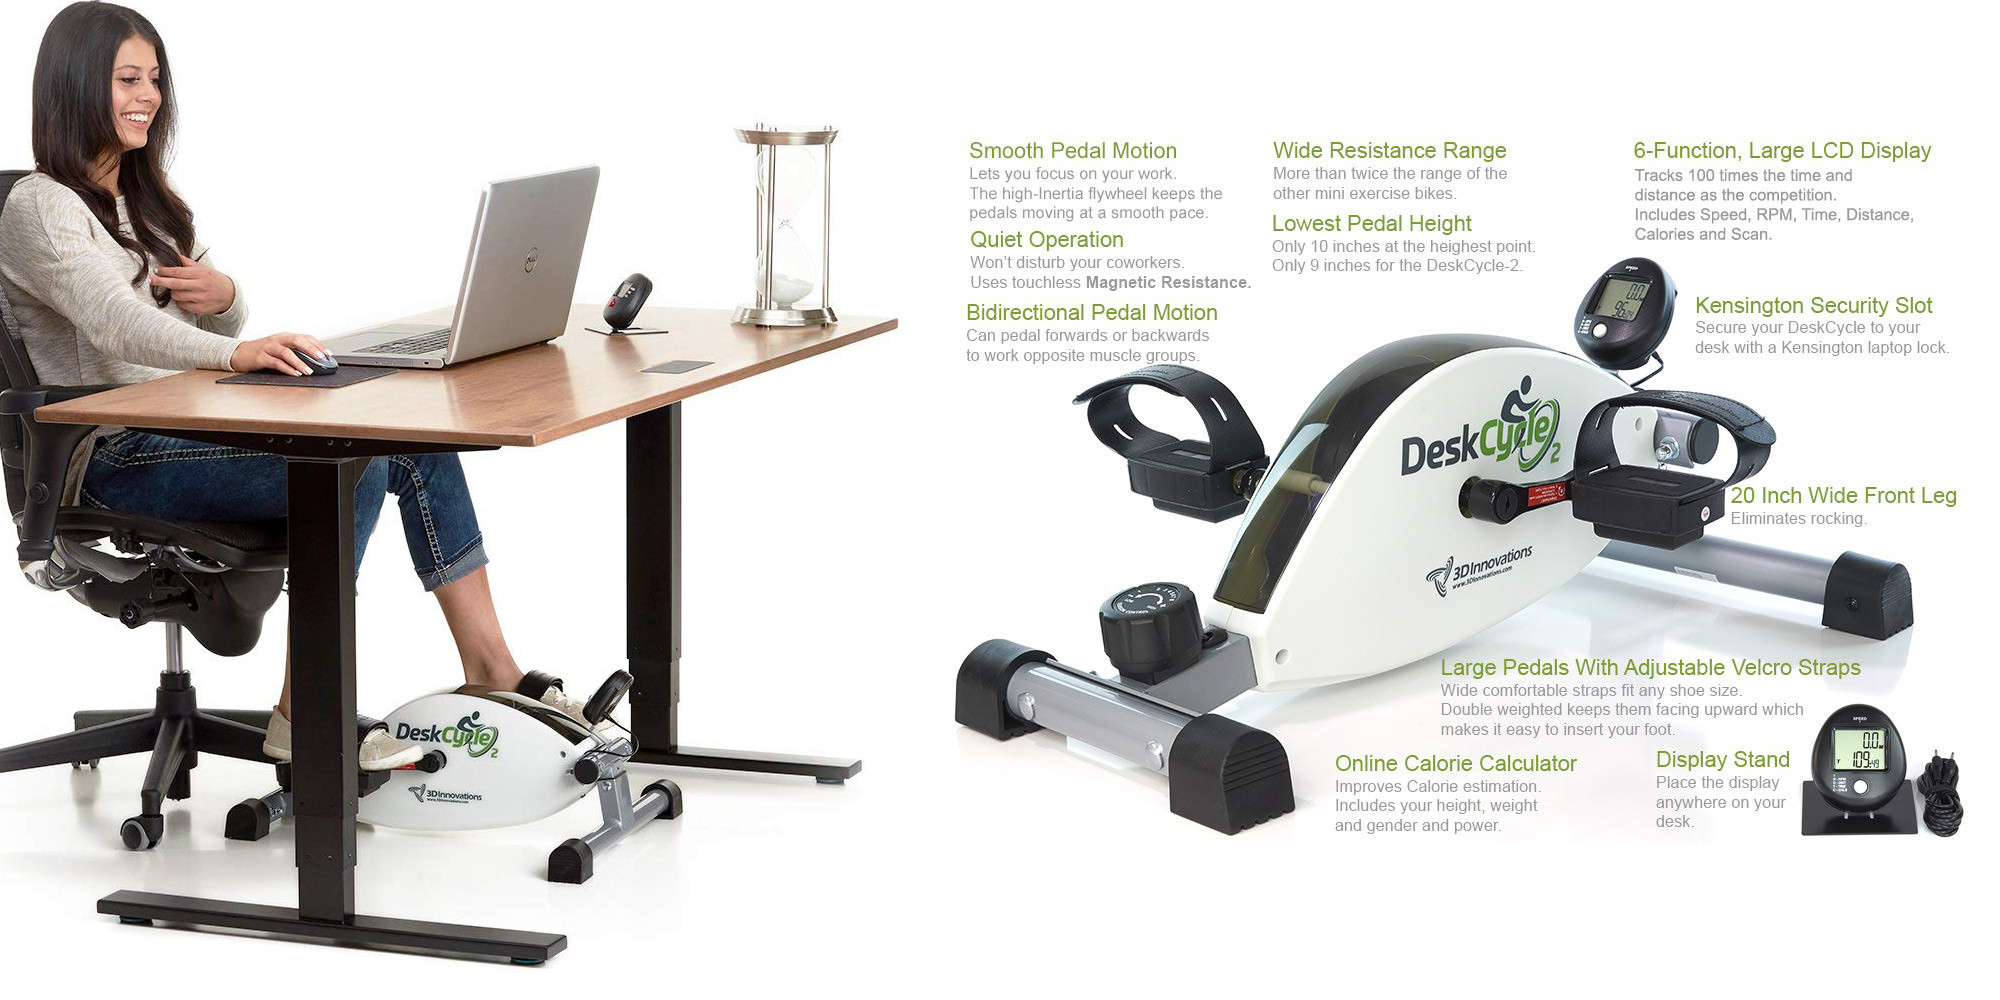 Add The Deskcycle 2 Under Desk Exercise Bike To Your